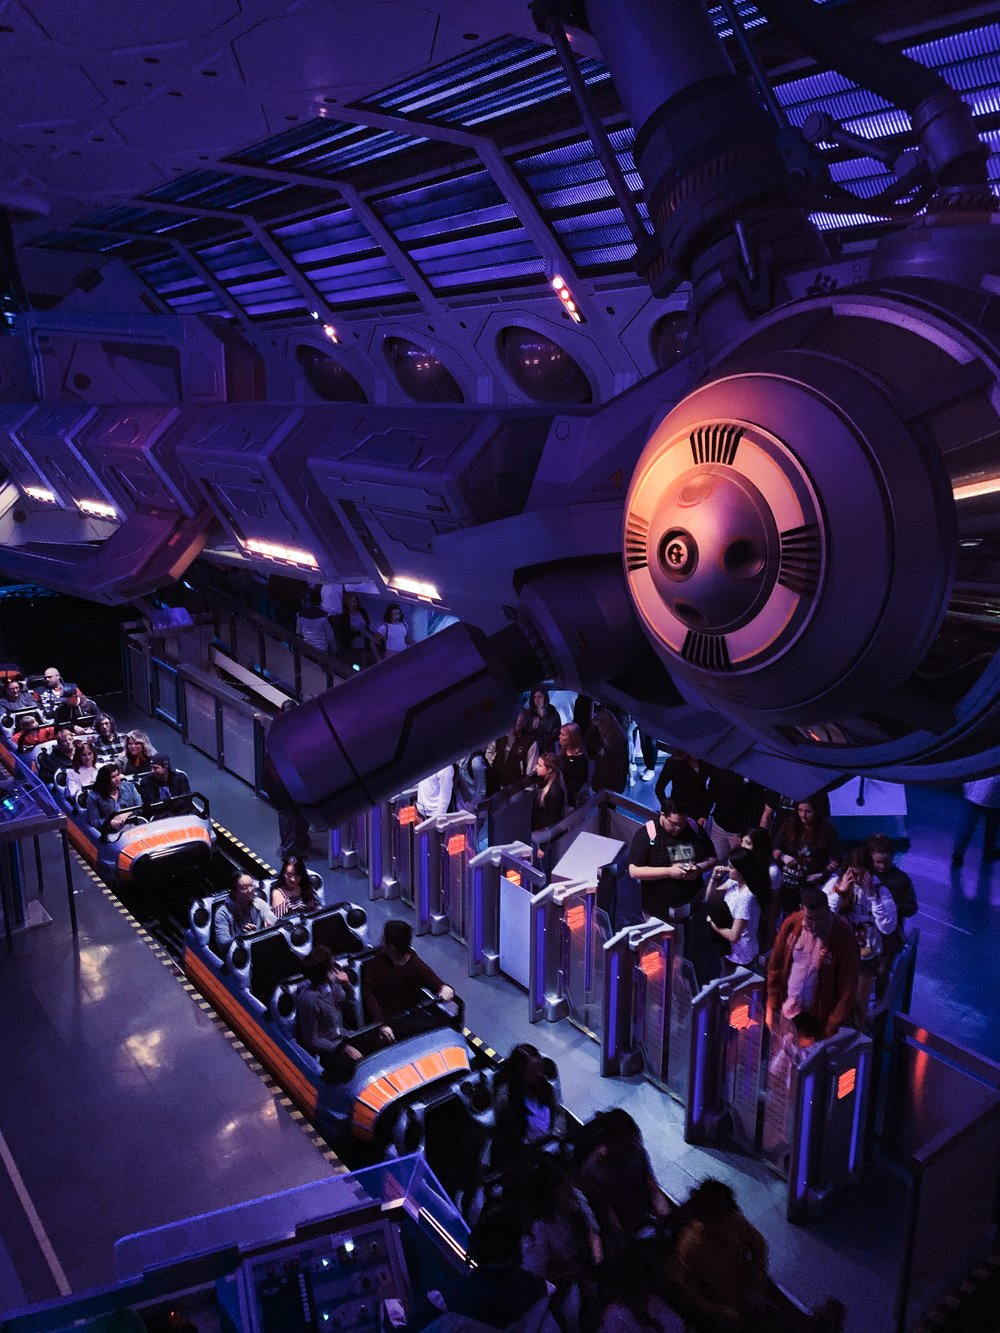 View from above - inside Space Mountain.